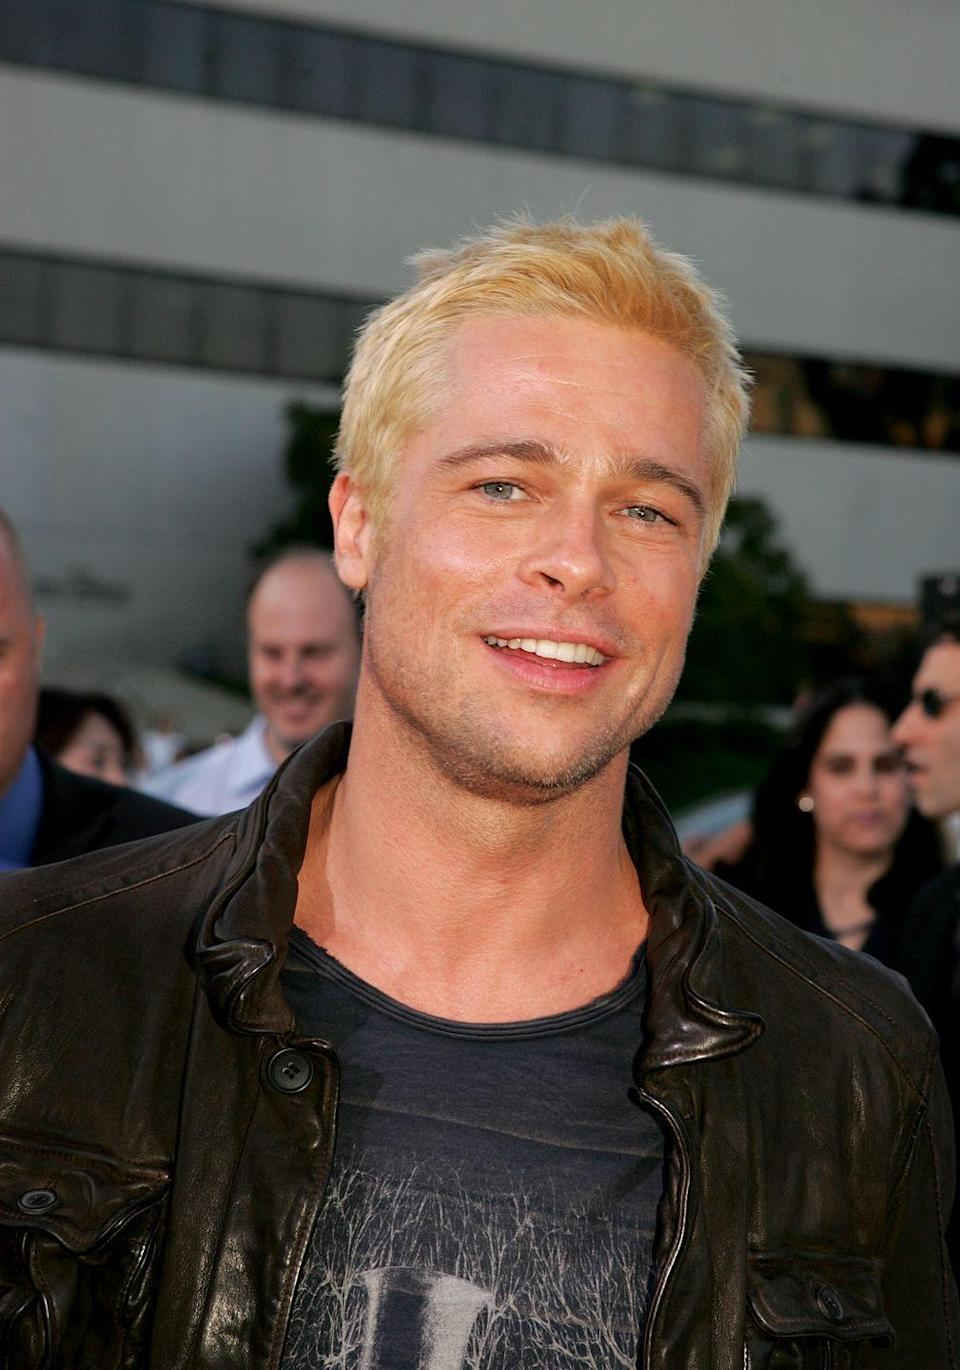 <p><strong>Blonde</strong></p><p>But Pitt also knows how to rock a fashion trend once in a while, as he did when he showed up to the <em>Mr. and Mrs. Smith</em> premiere with freshly-bleached locks back in 2005. </p>